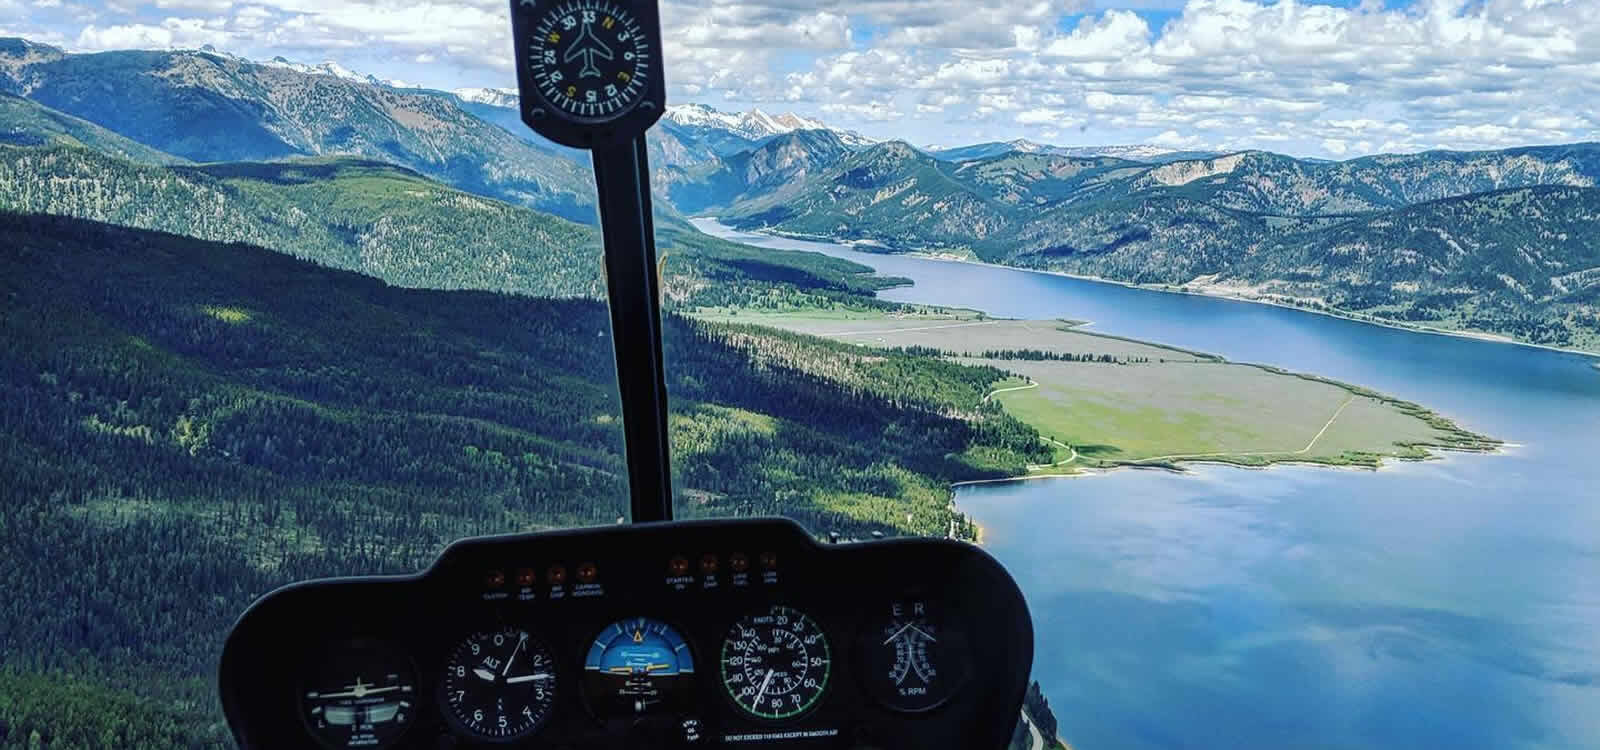 30 Minute Yelowstone Helicopter Tour